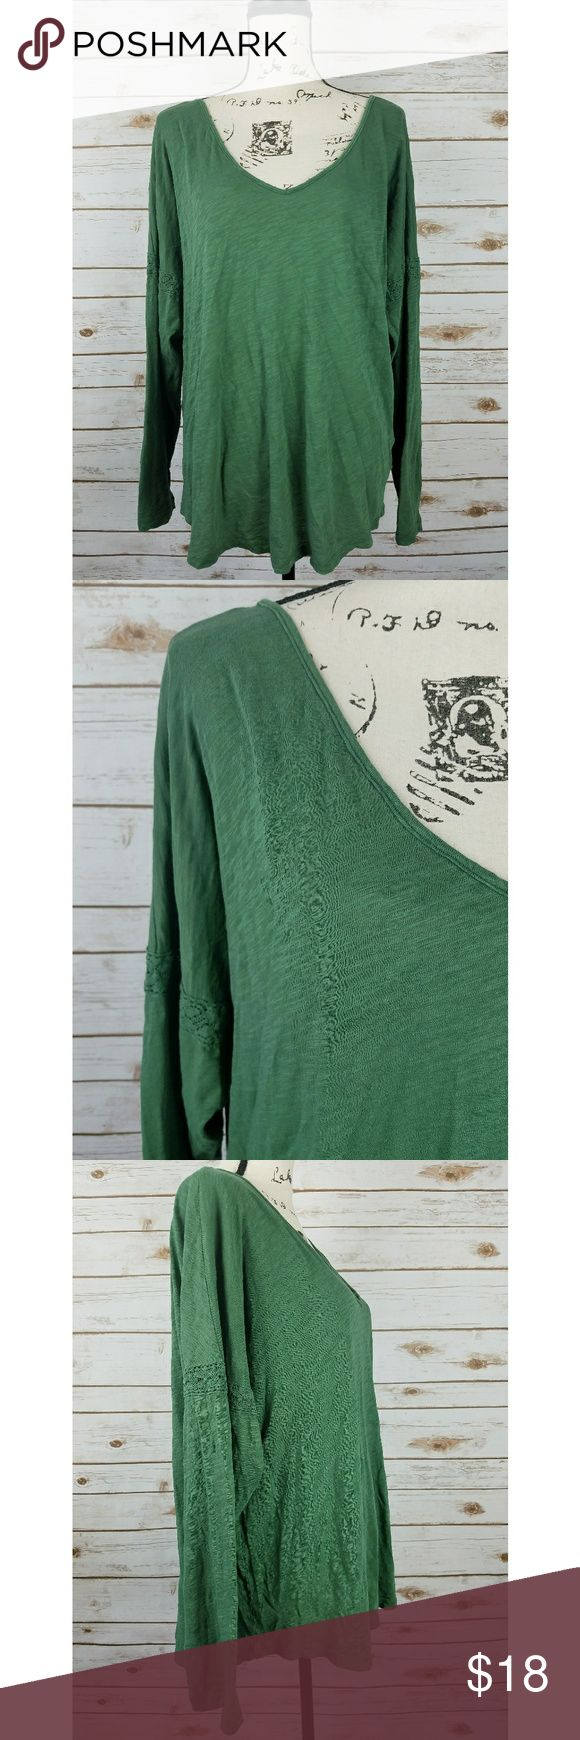 "Gap Deep V Green Long Sleeve Top Lace Detail Excellent condition, no stains or flaws. Material is light,  breathable and soft. There is lace detail around the upper arm of both sleeves. The material tag was cut out so I am not sure of the material content.   Chest (laying flat): 24 Length: 28""  Reasonable offers will be considered, bundles are discounted. No trades and no modeling. I can ship same or next day.  A1 GAP Tops Tees - Long Sleeve"